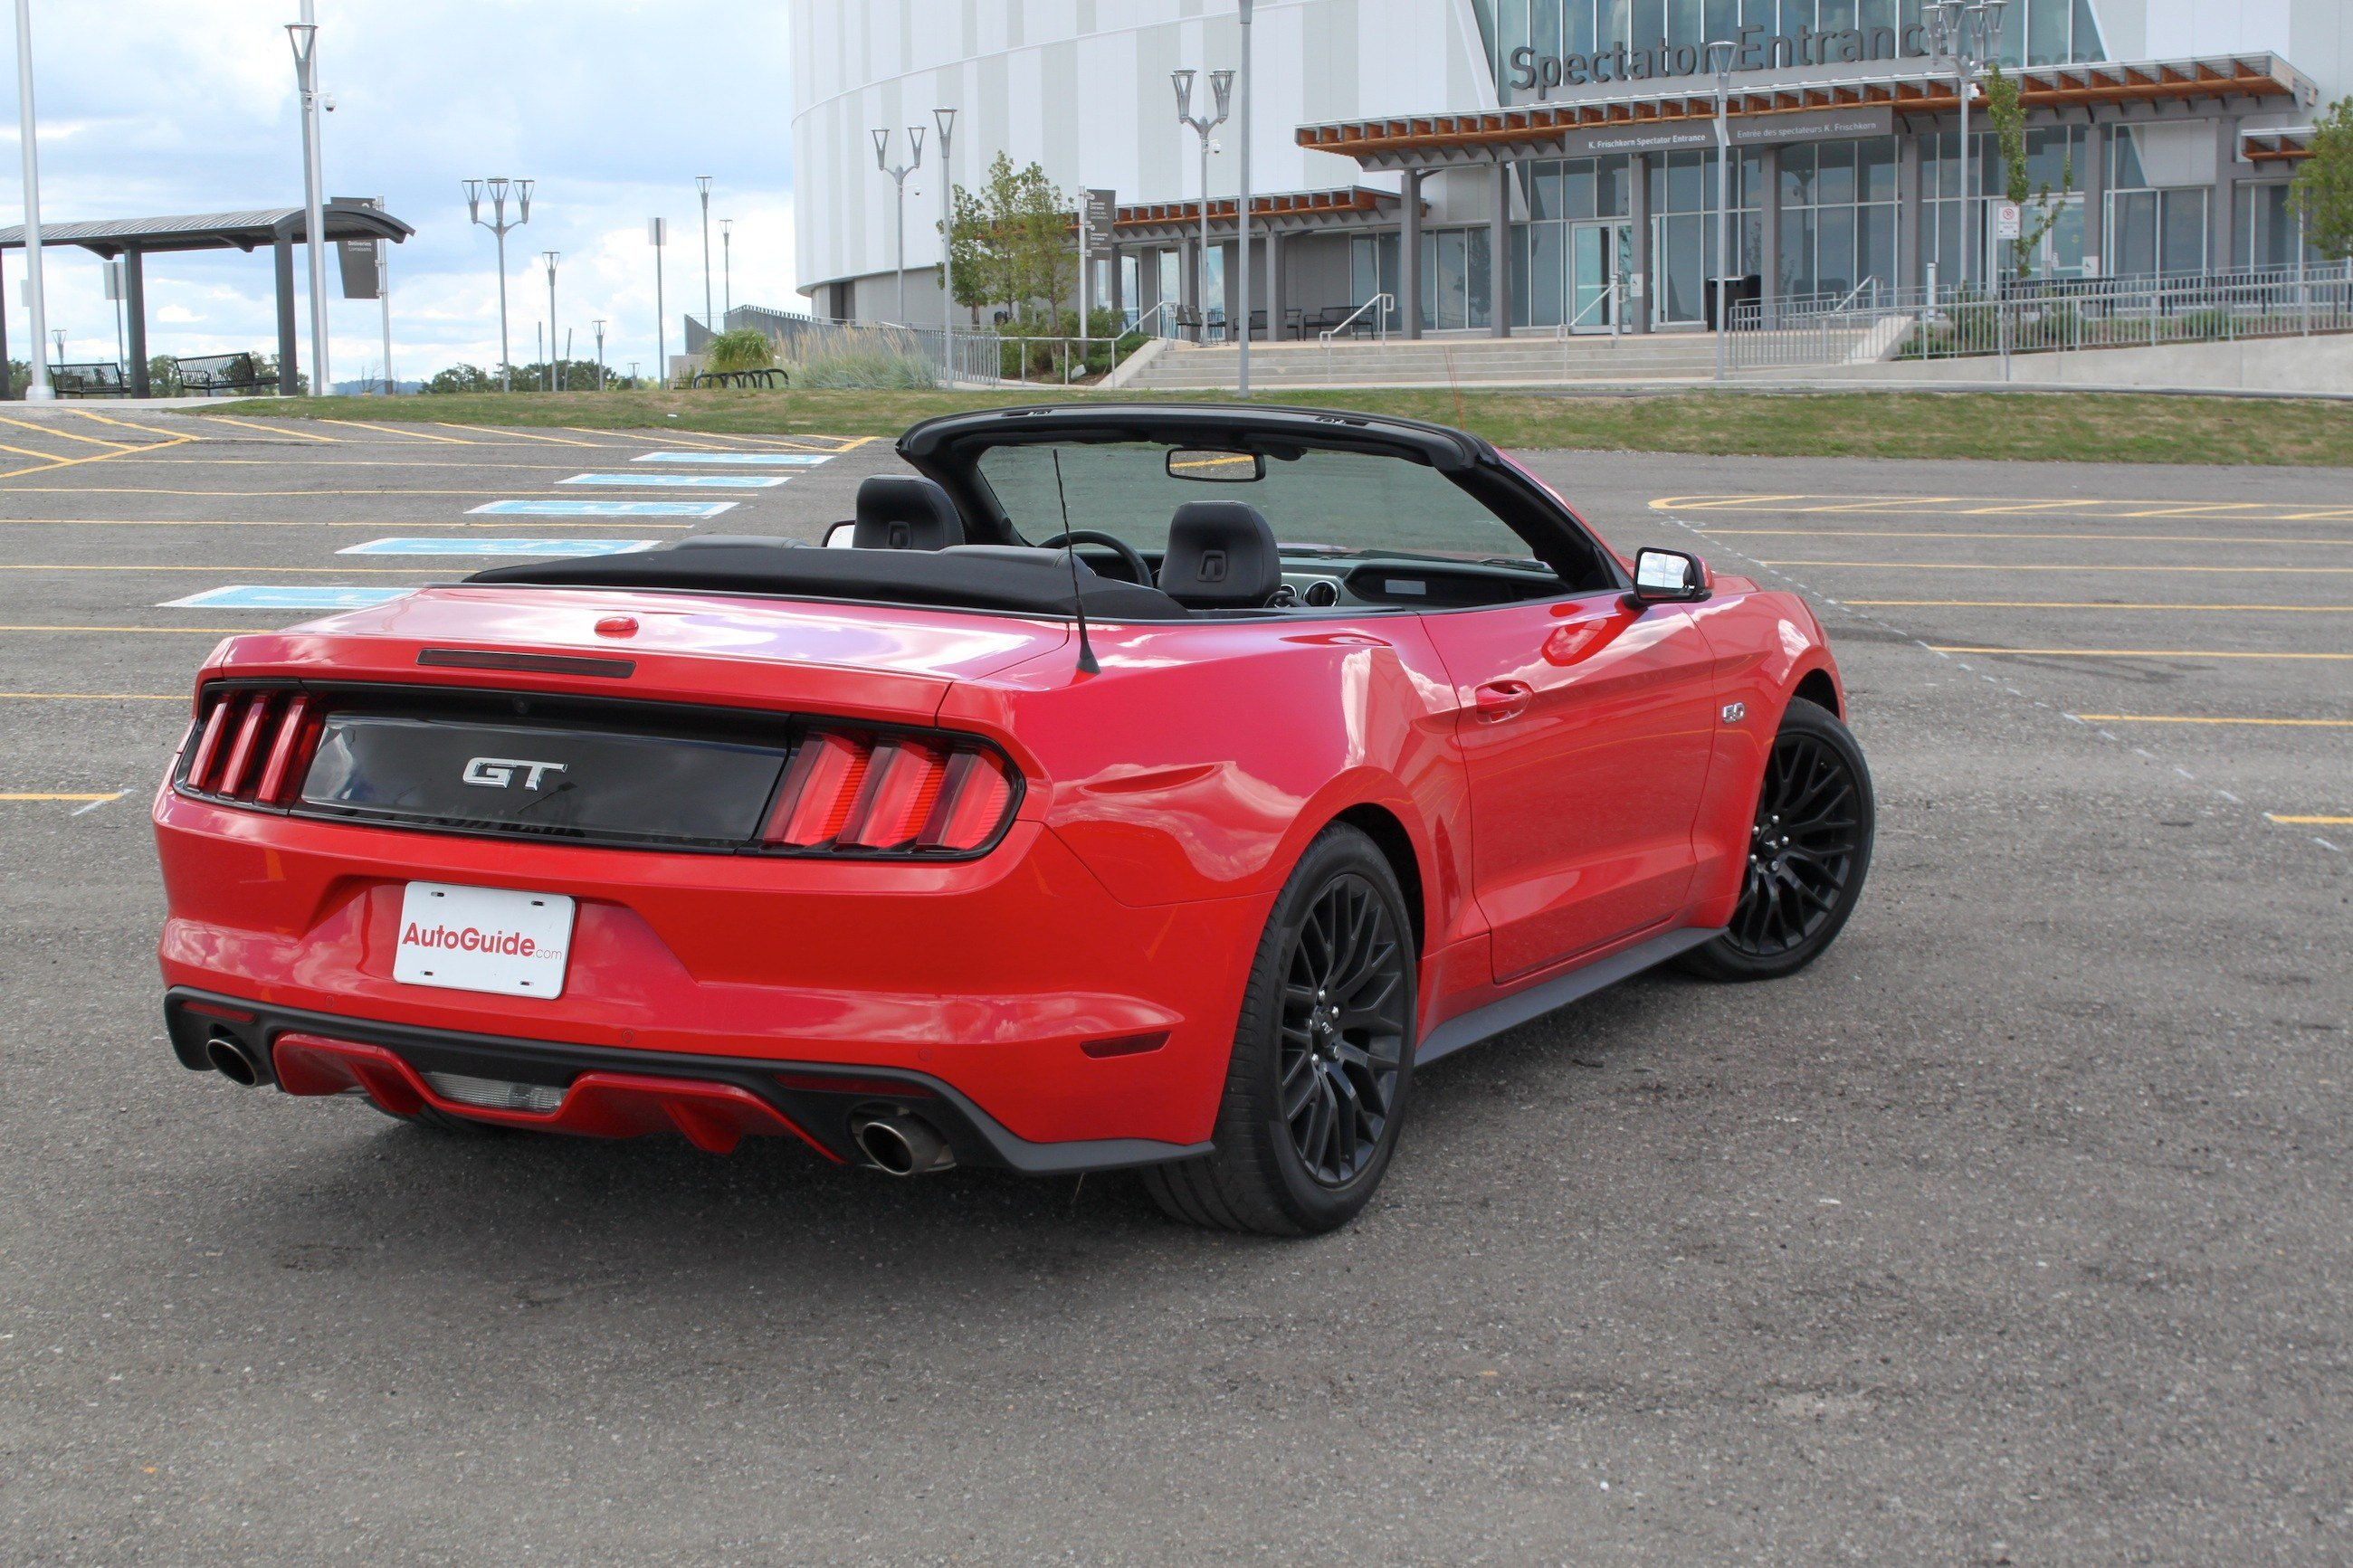 2017 ford mustang gt convertible review news - Mustang gt ...